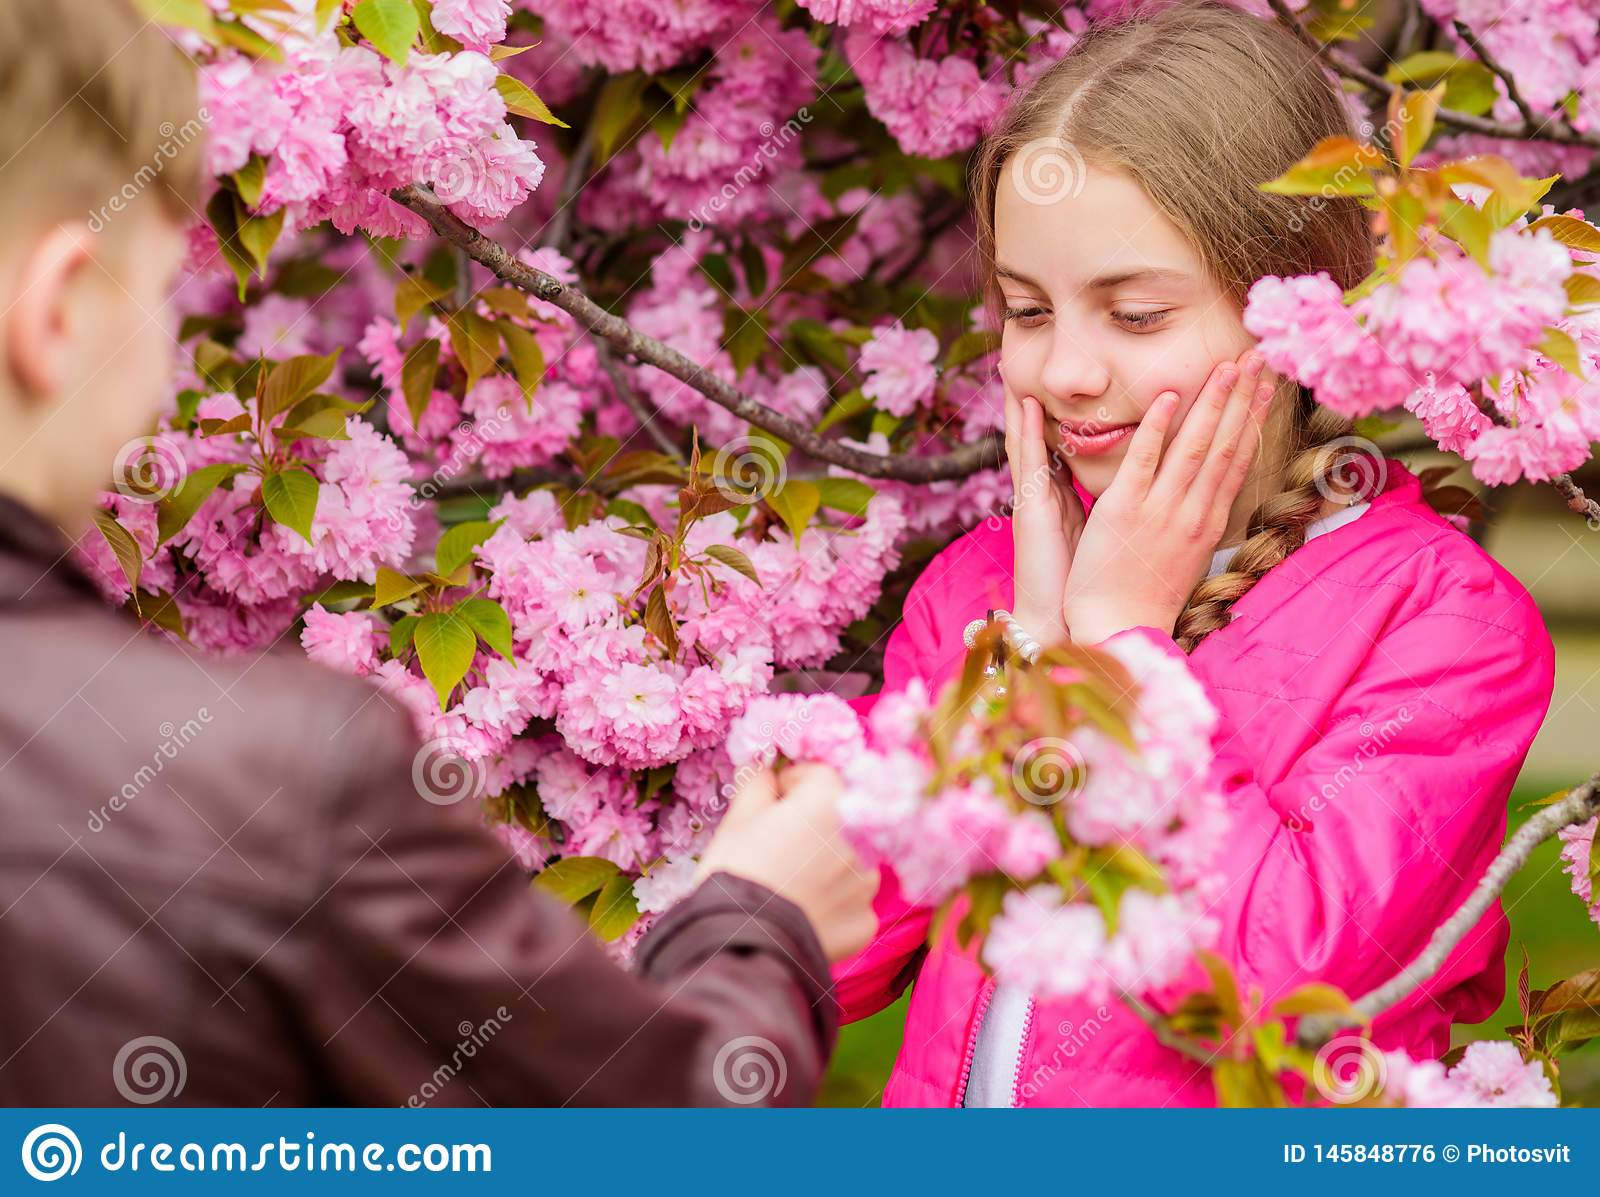 Surprising her. Romantic teens. Kids enjoying pink cherry blossom. Tender bloom. Couple kids on flowers of sakura tree